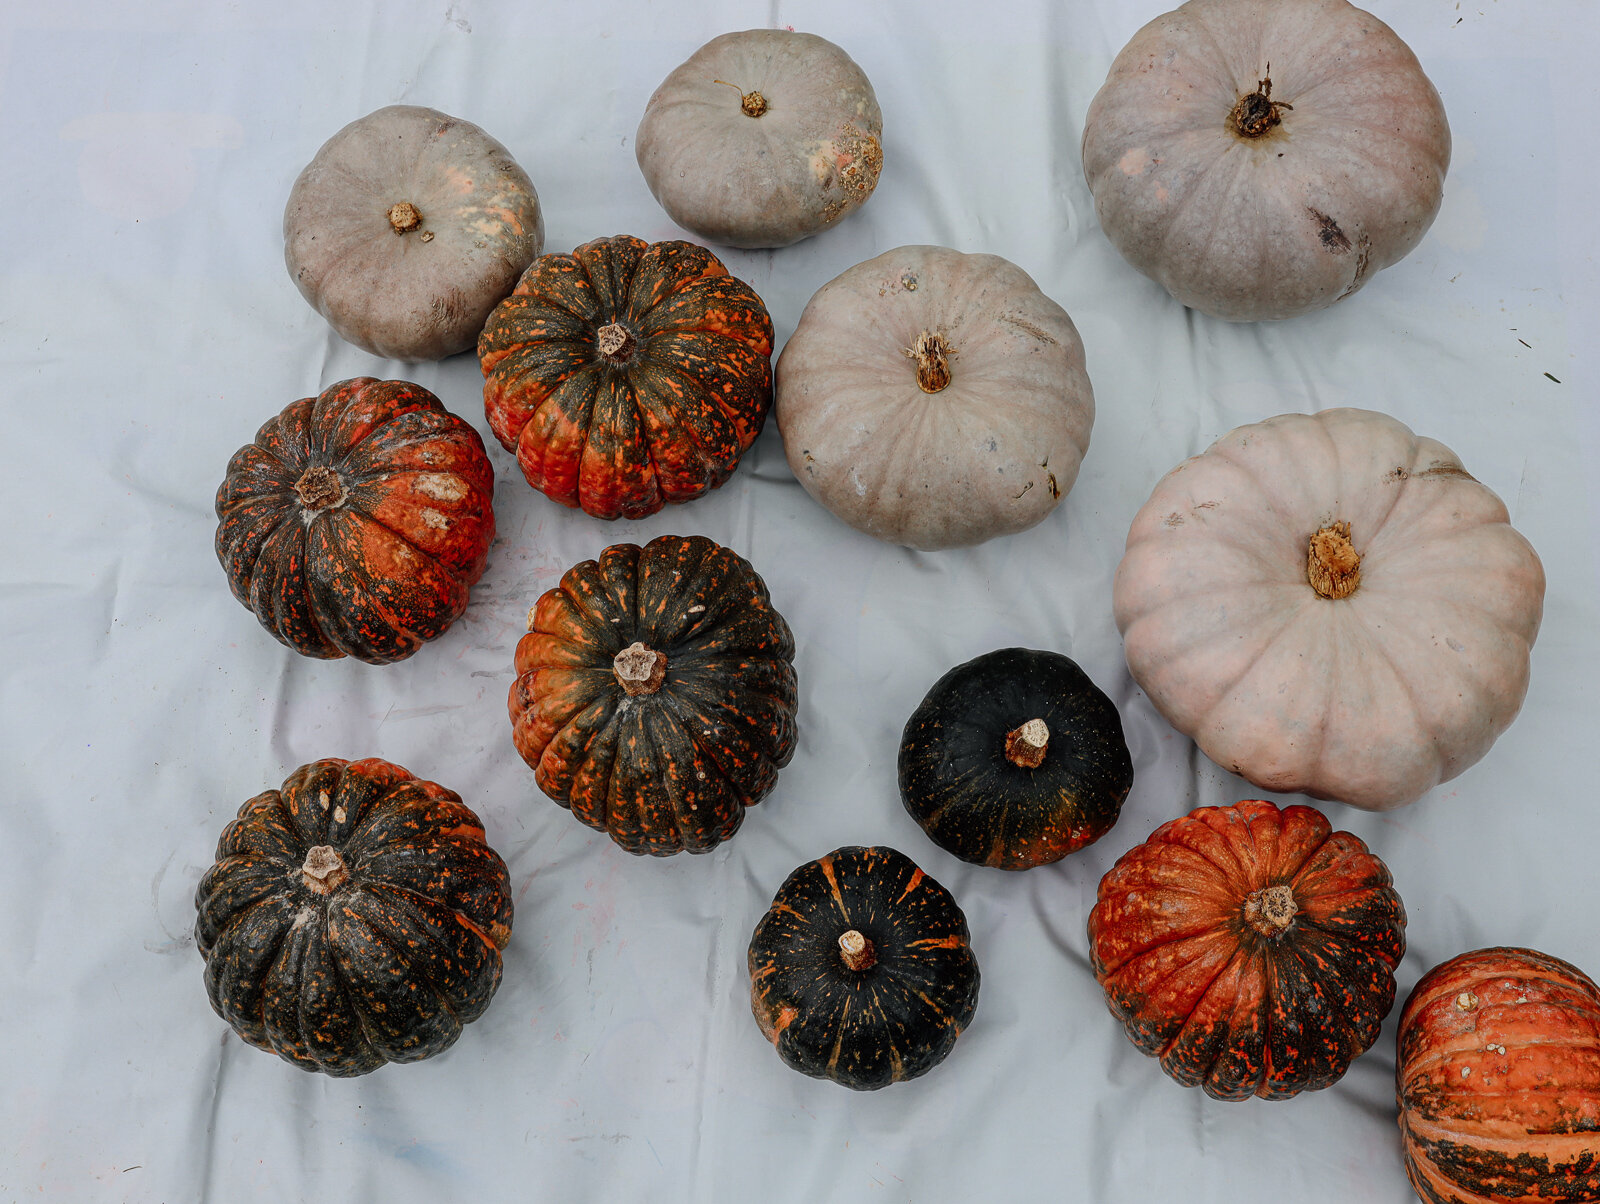 DIY_Painted_Pastel_Pumpkins_by_Clever_Poppy_raw.jpg